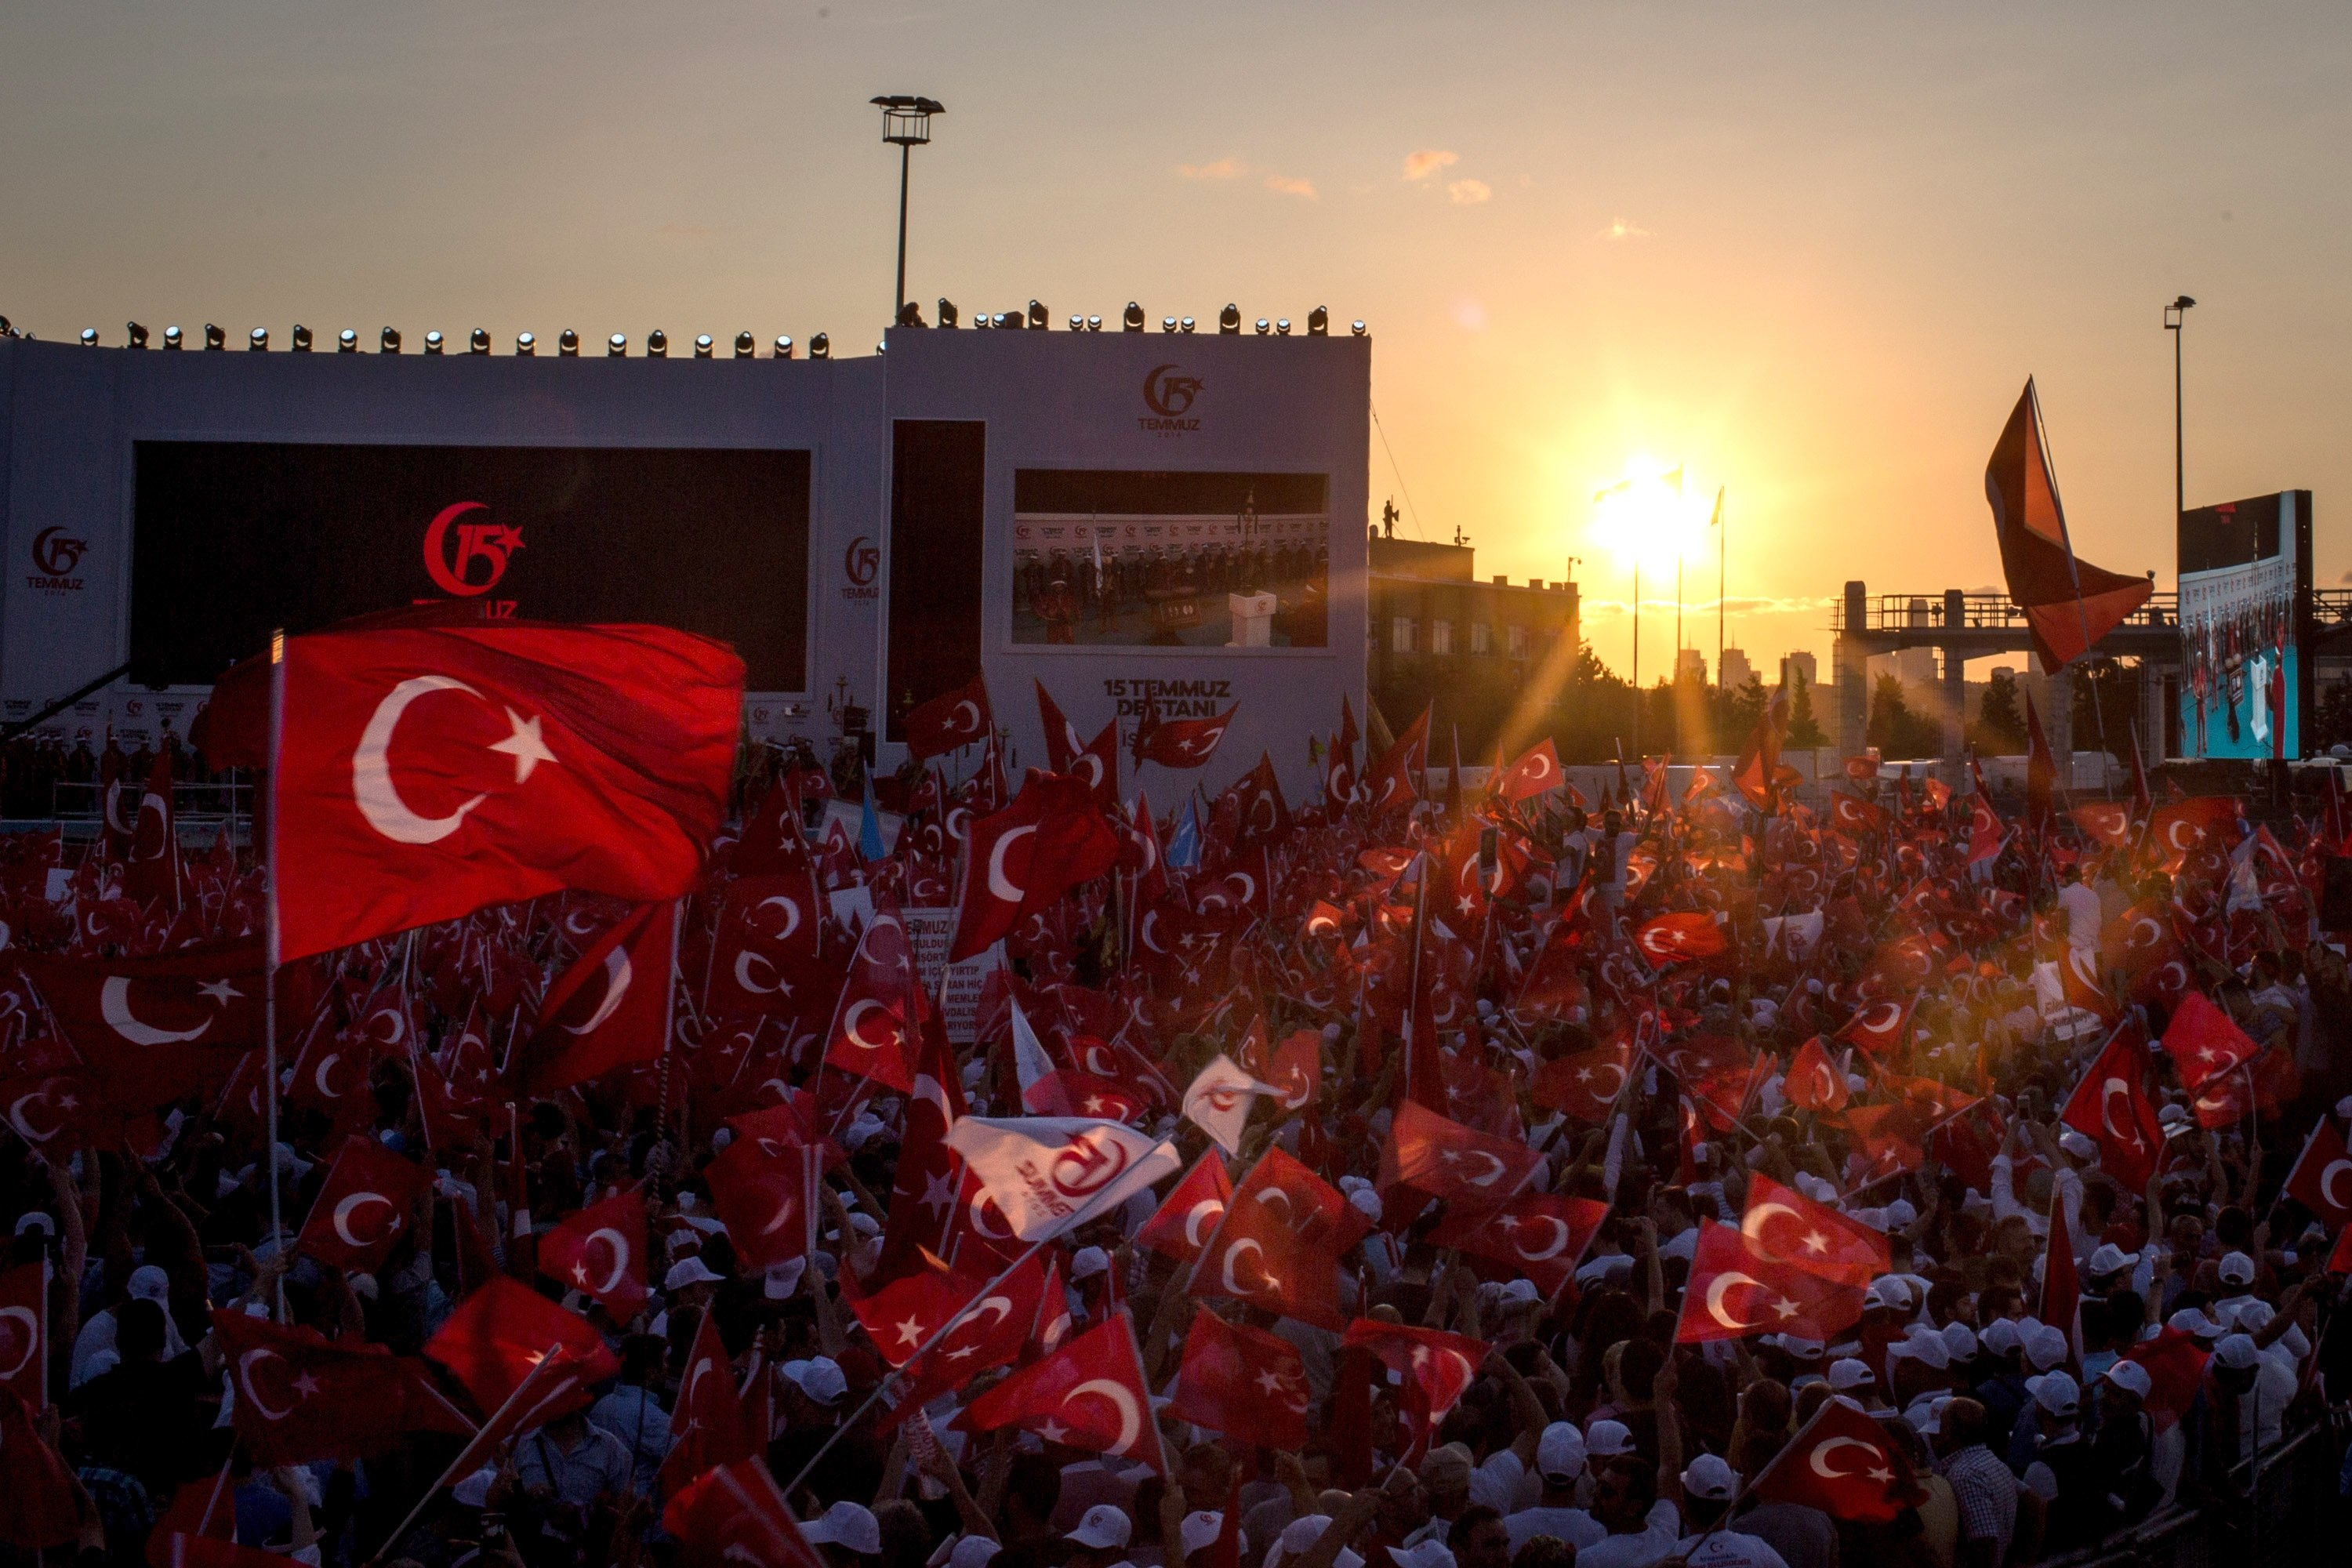 People chant slogans and wave flags as they wait for official ceremonies to begin on the July 15 Martyrs Bridge on the first anniversary of the July 15, 2016 failed coup attempt, Istanbul, Turkey, July 15, 2017. (Photo by Getty Images)